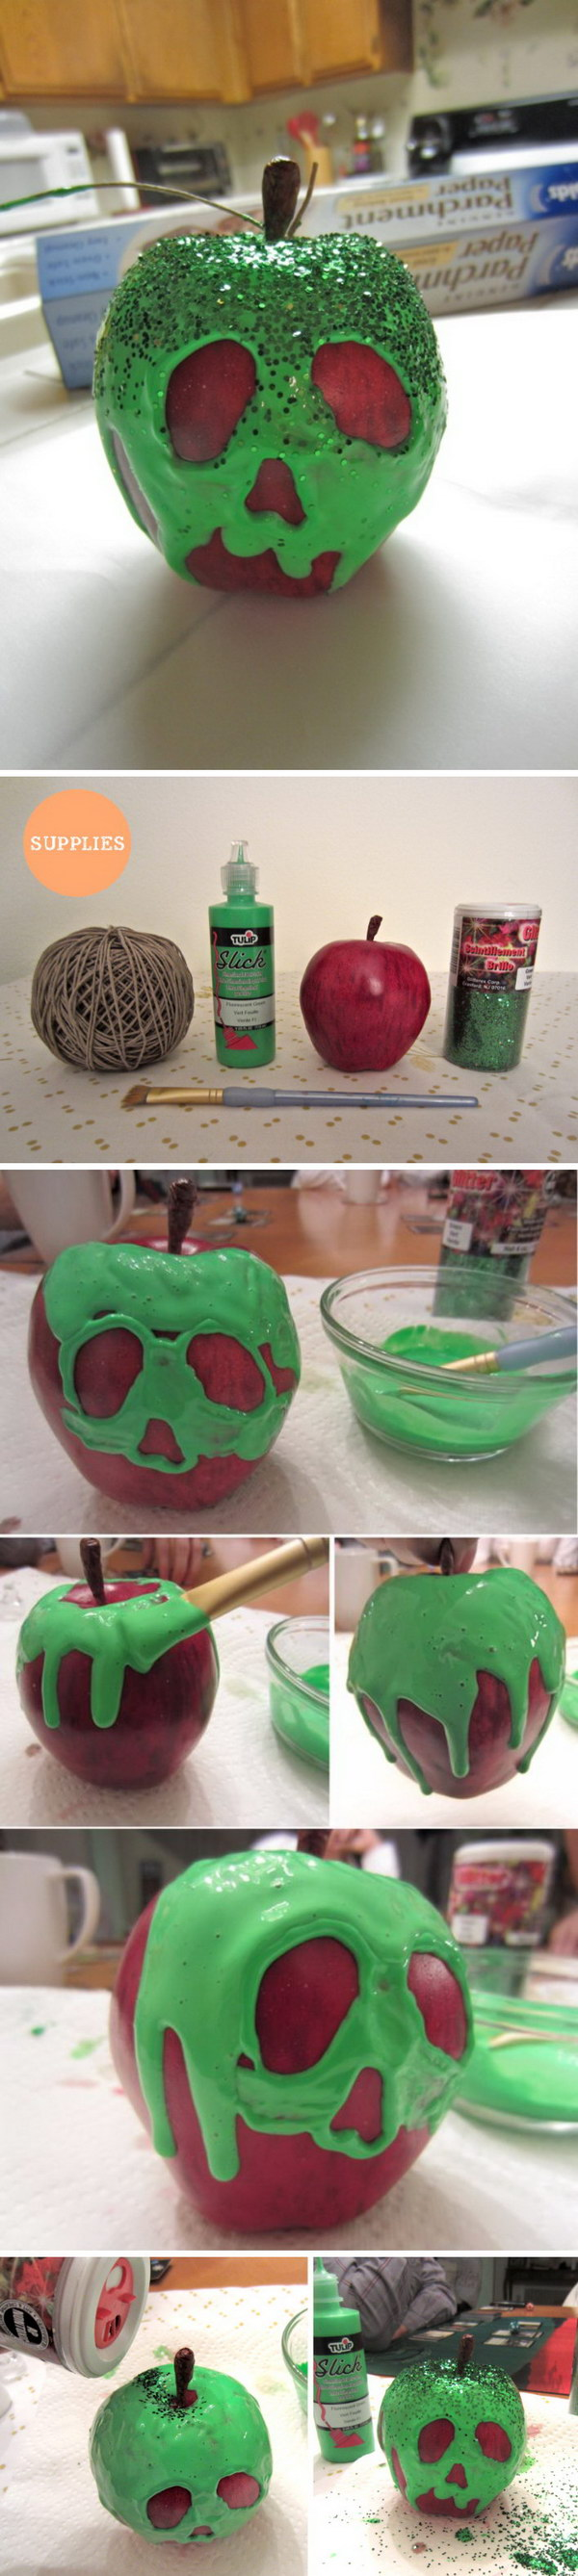 30 dollar store crafts for halloween - 30 Dollar Store DIY Projects for Halloween